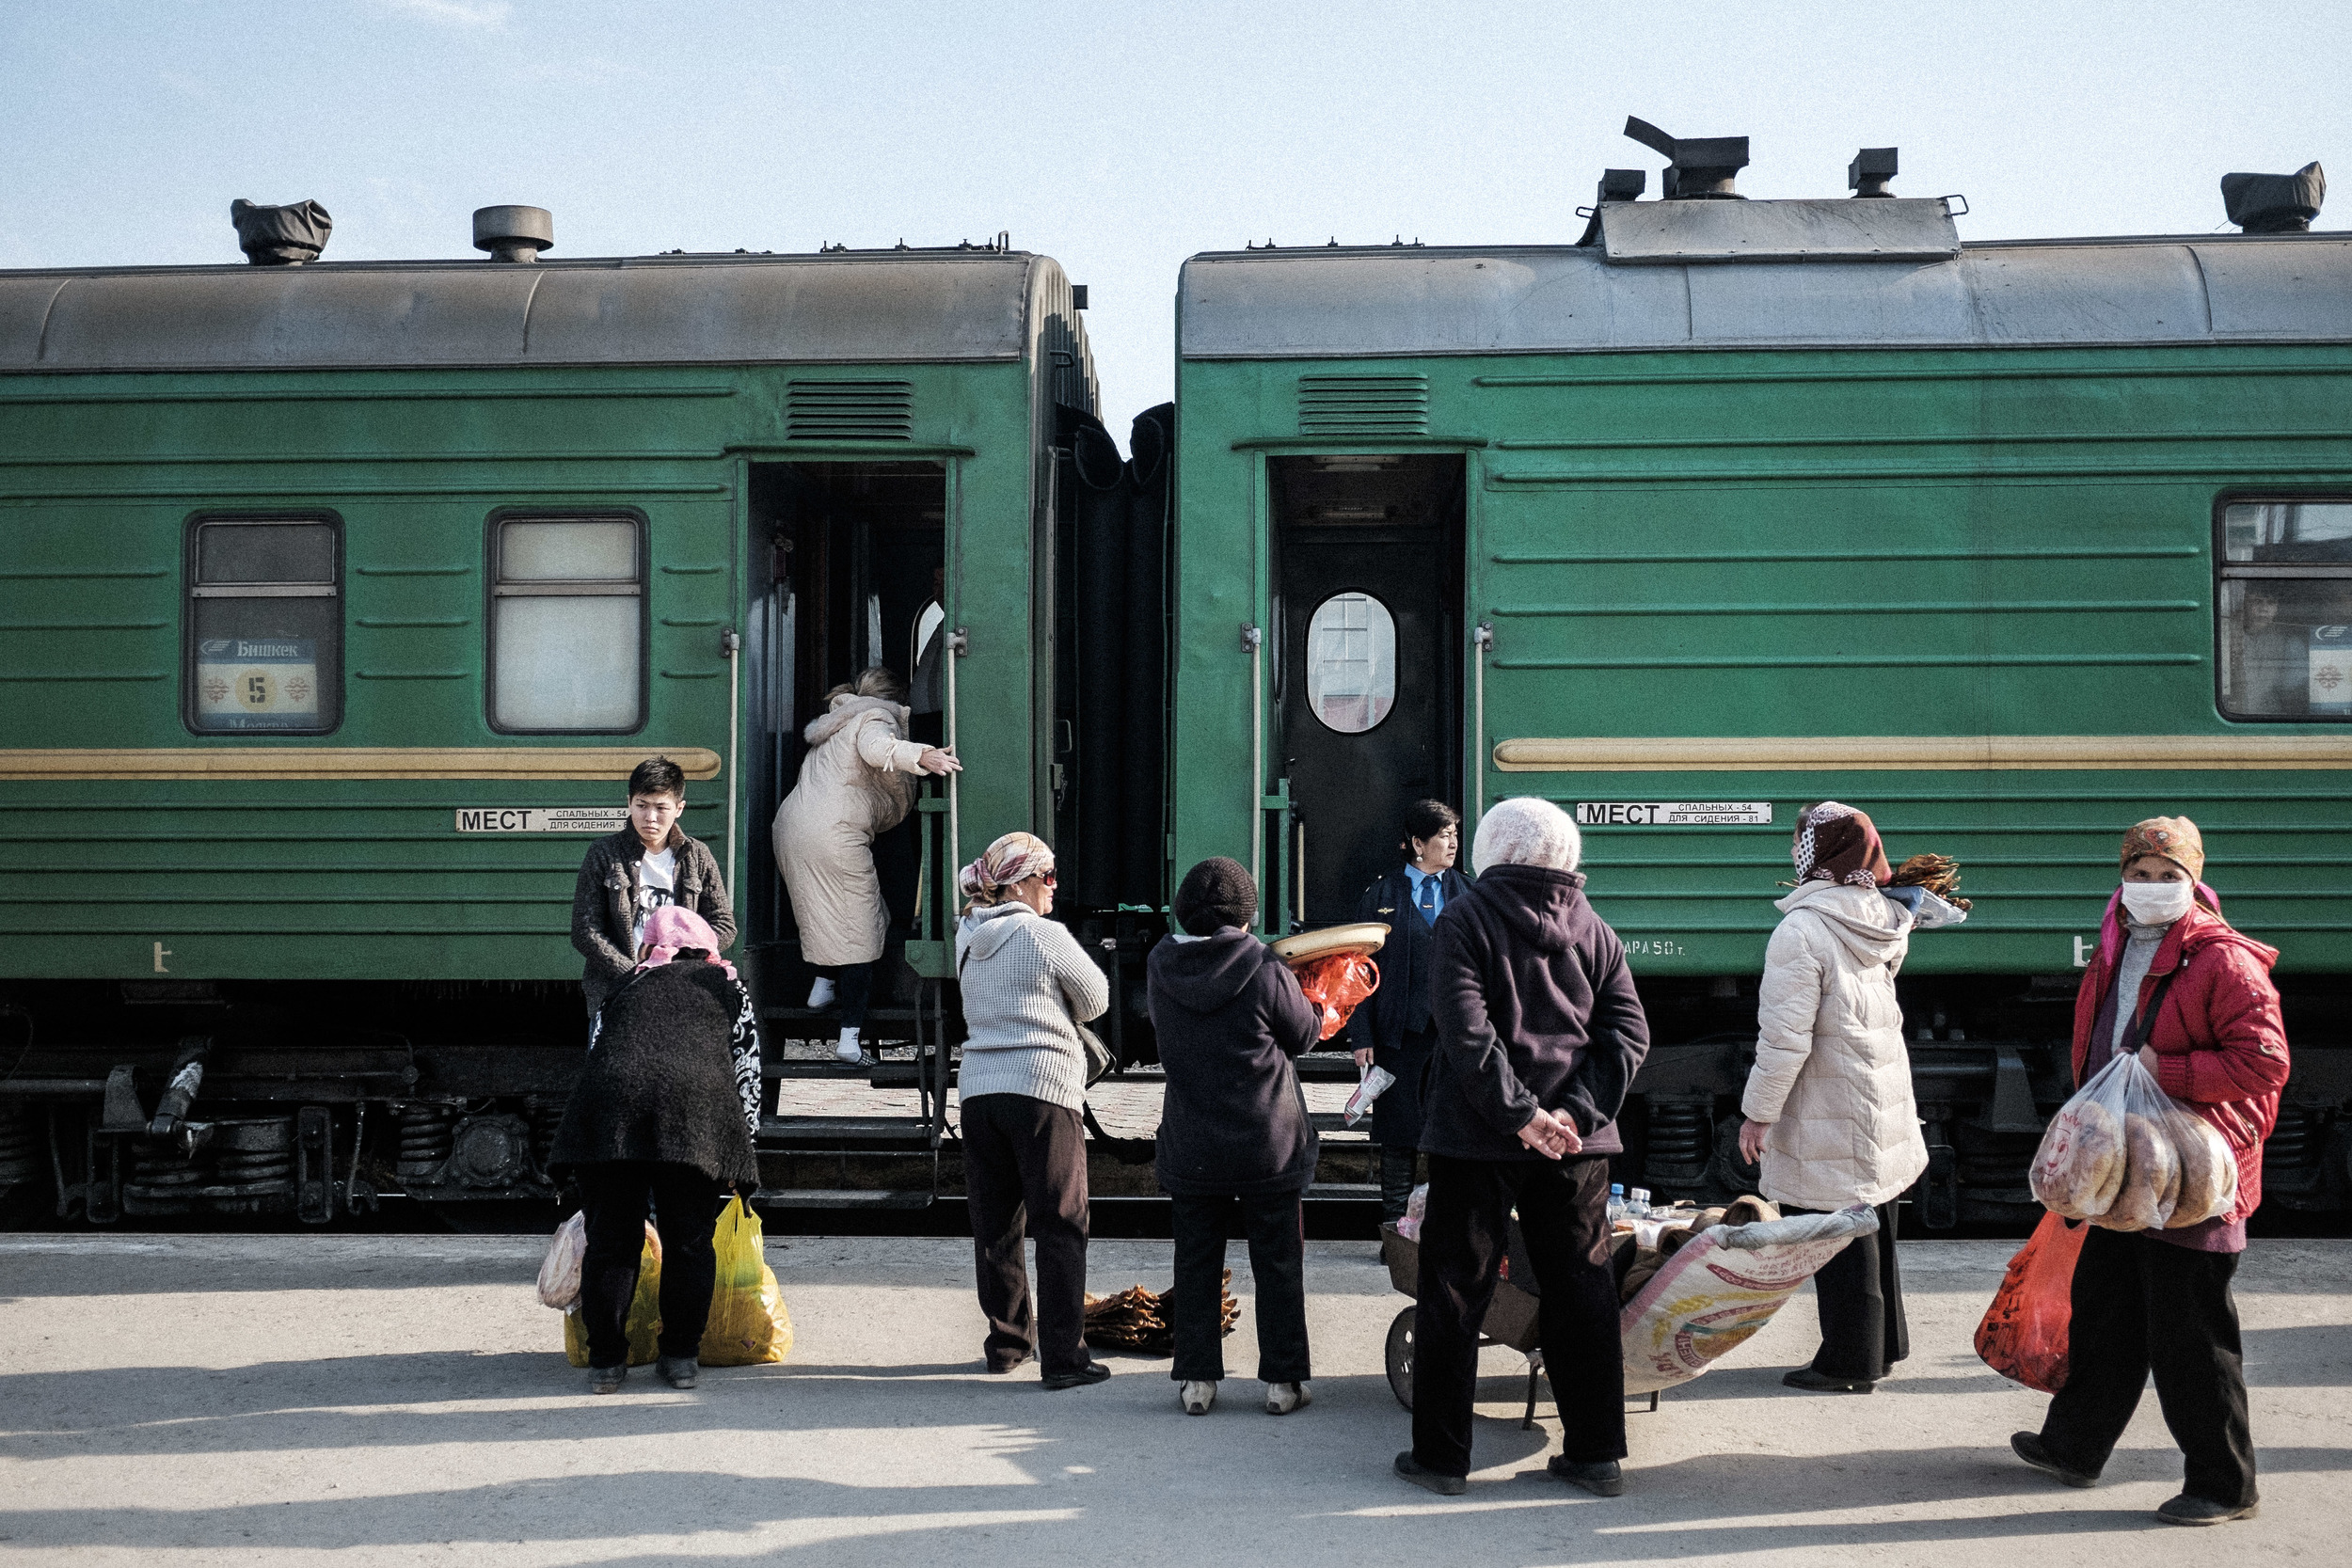 Train station. Shieli, Kazakhstan, 2015